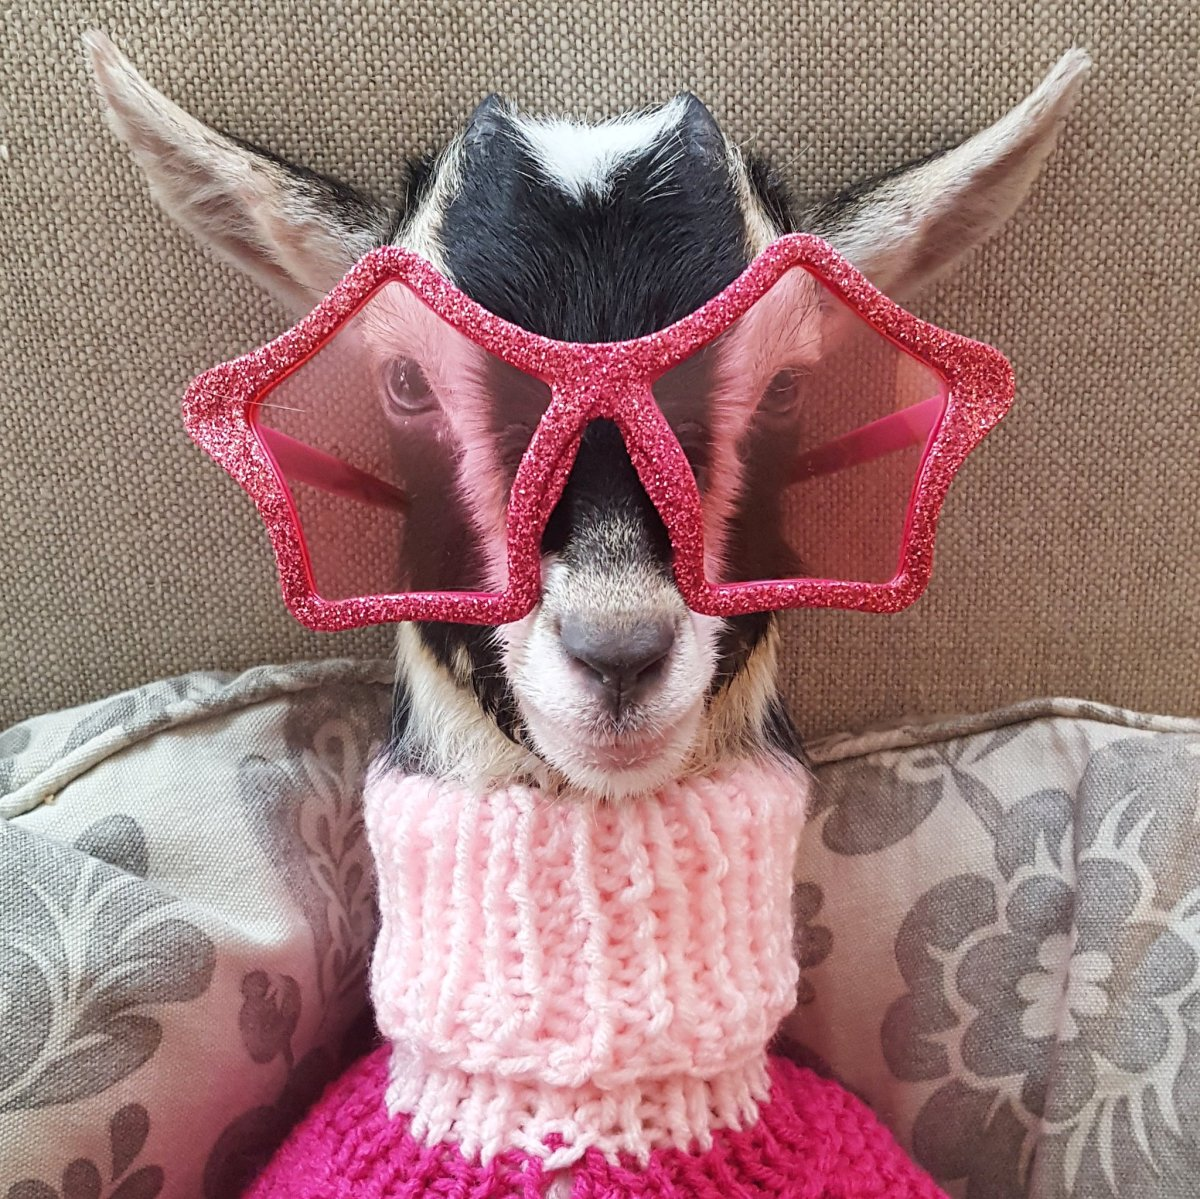 Polly Appears More Comfortable Dressed Up - Source: Twitter/Goats of Anarchy